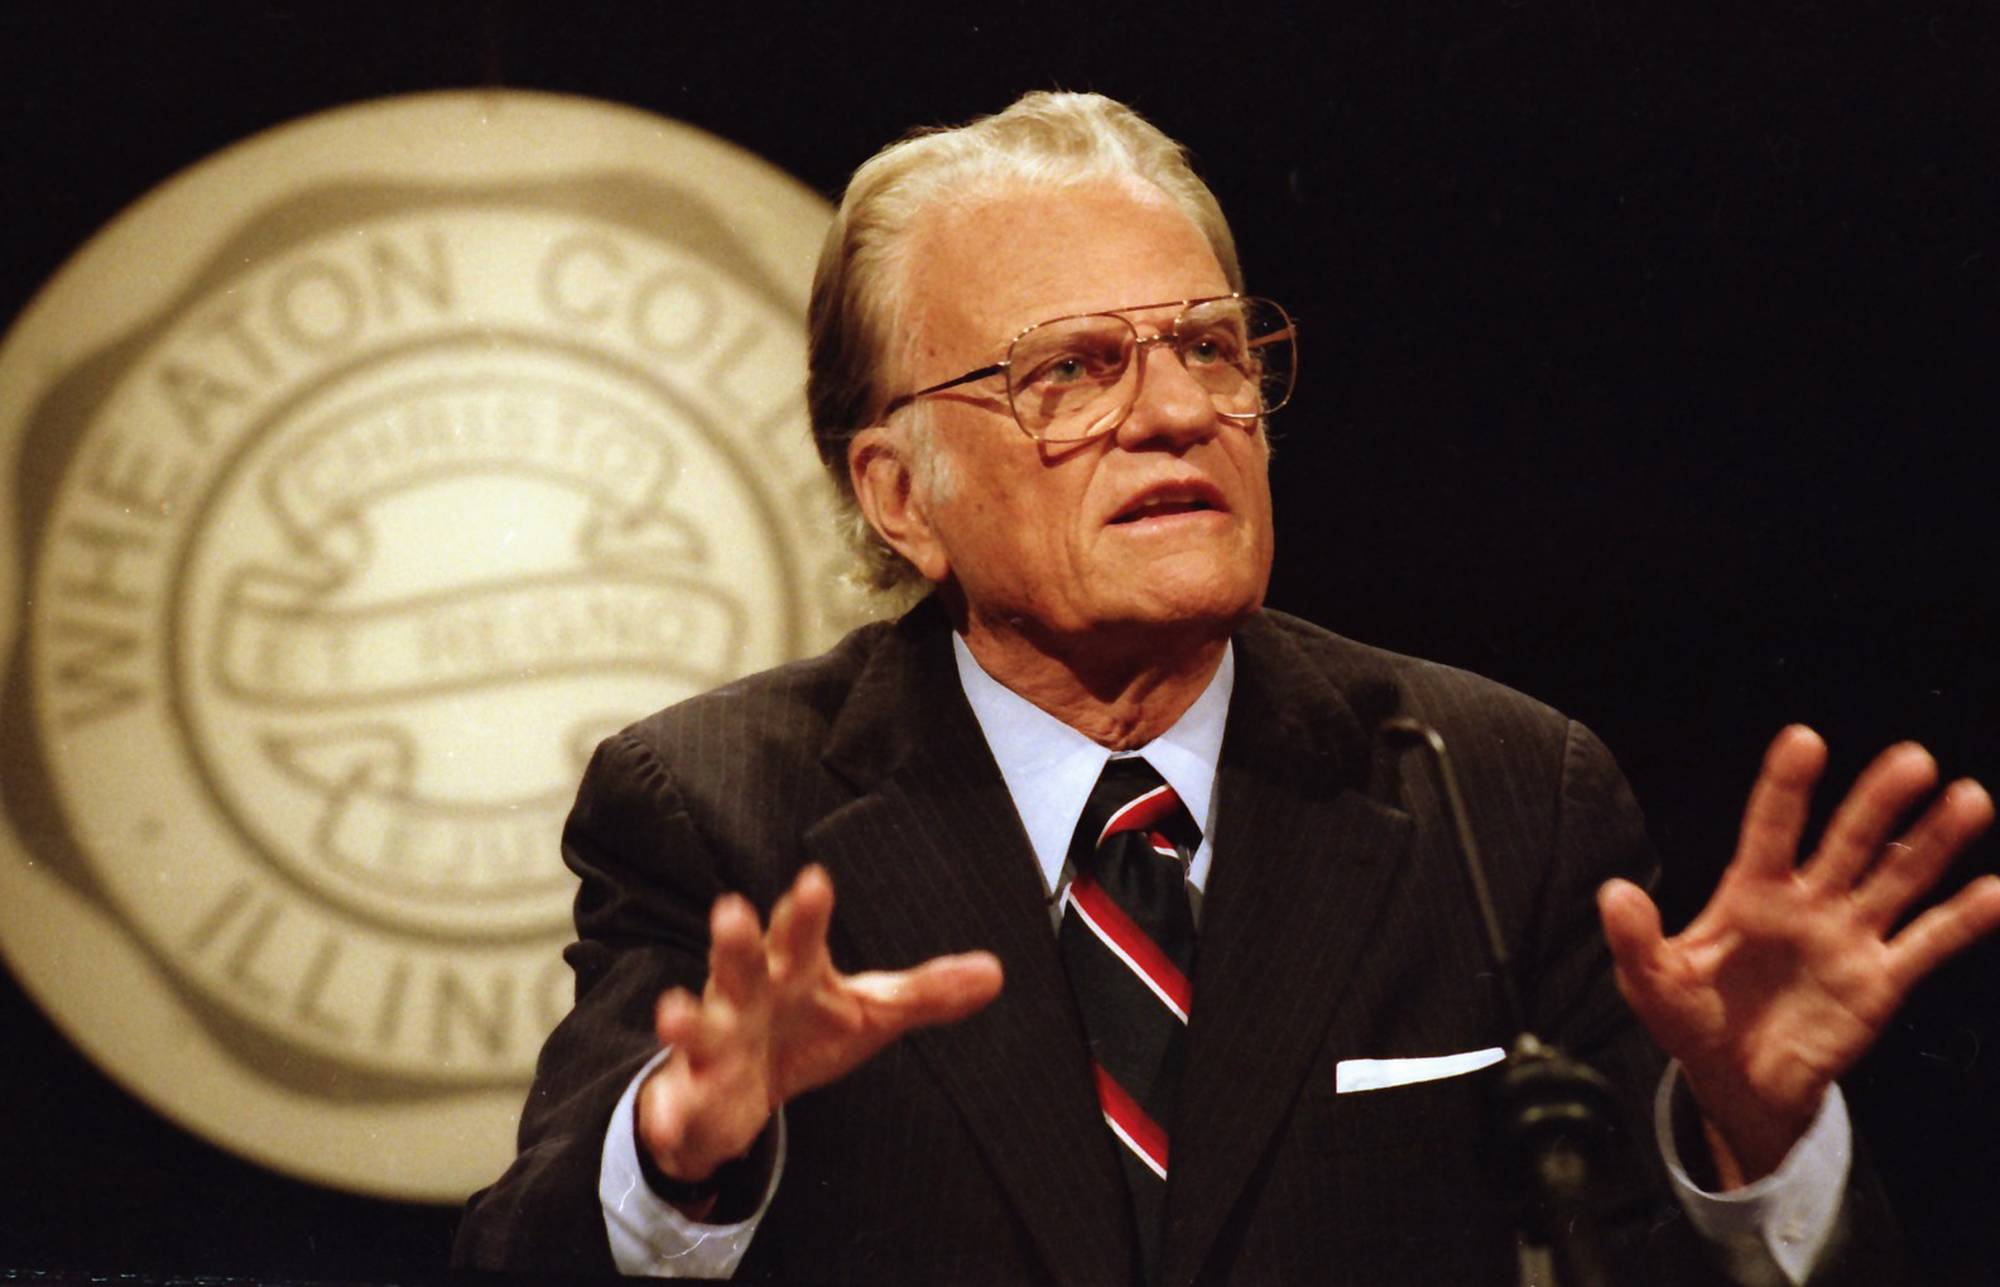 Rev. Billy Graham, who graduated from Wheaton College in 1943, returned to his alma mater on May 11, 1994.